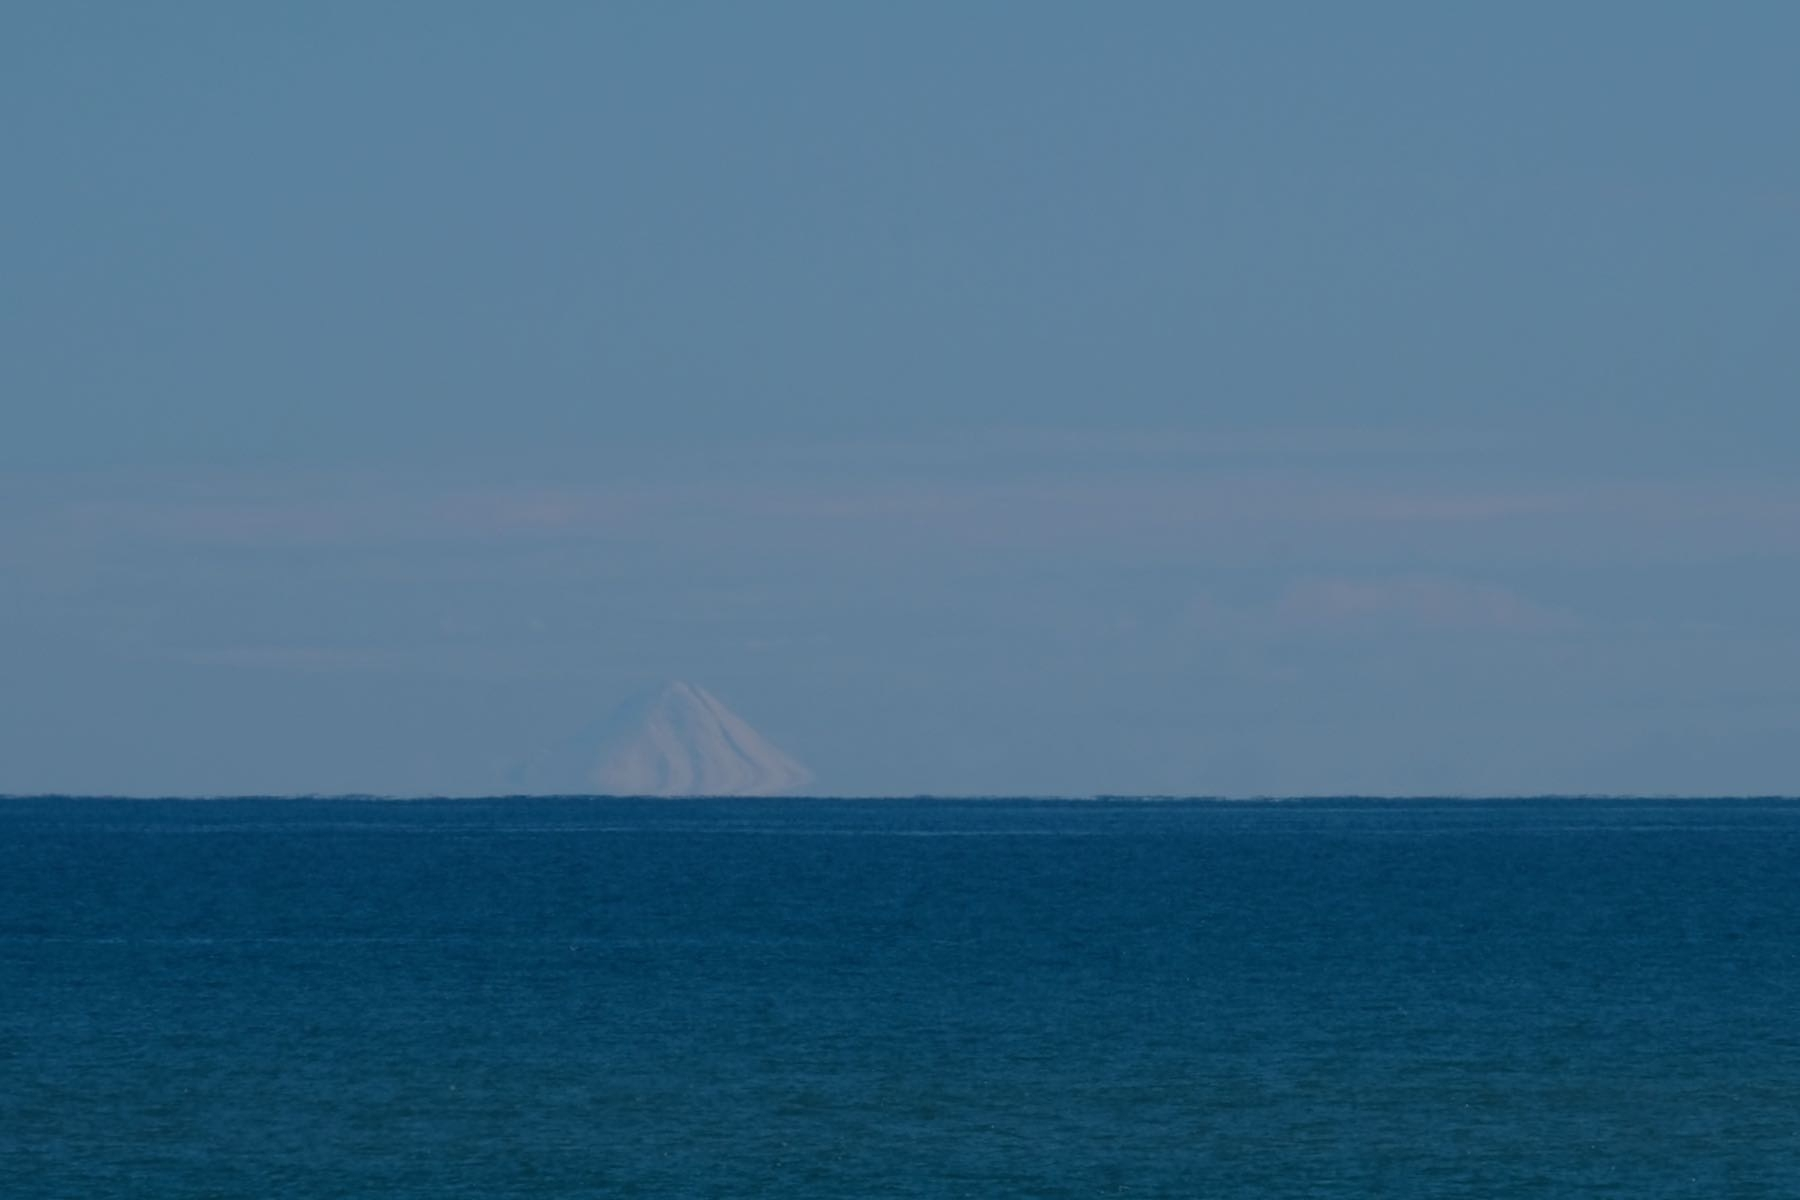 White snow clad conical mountain across the sea.